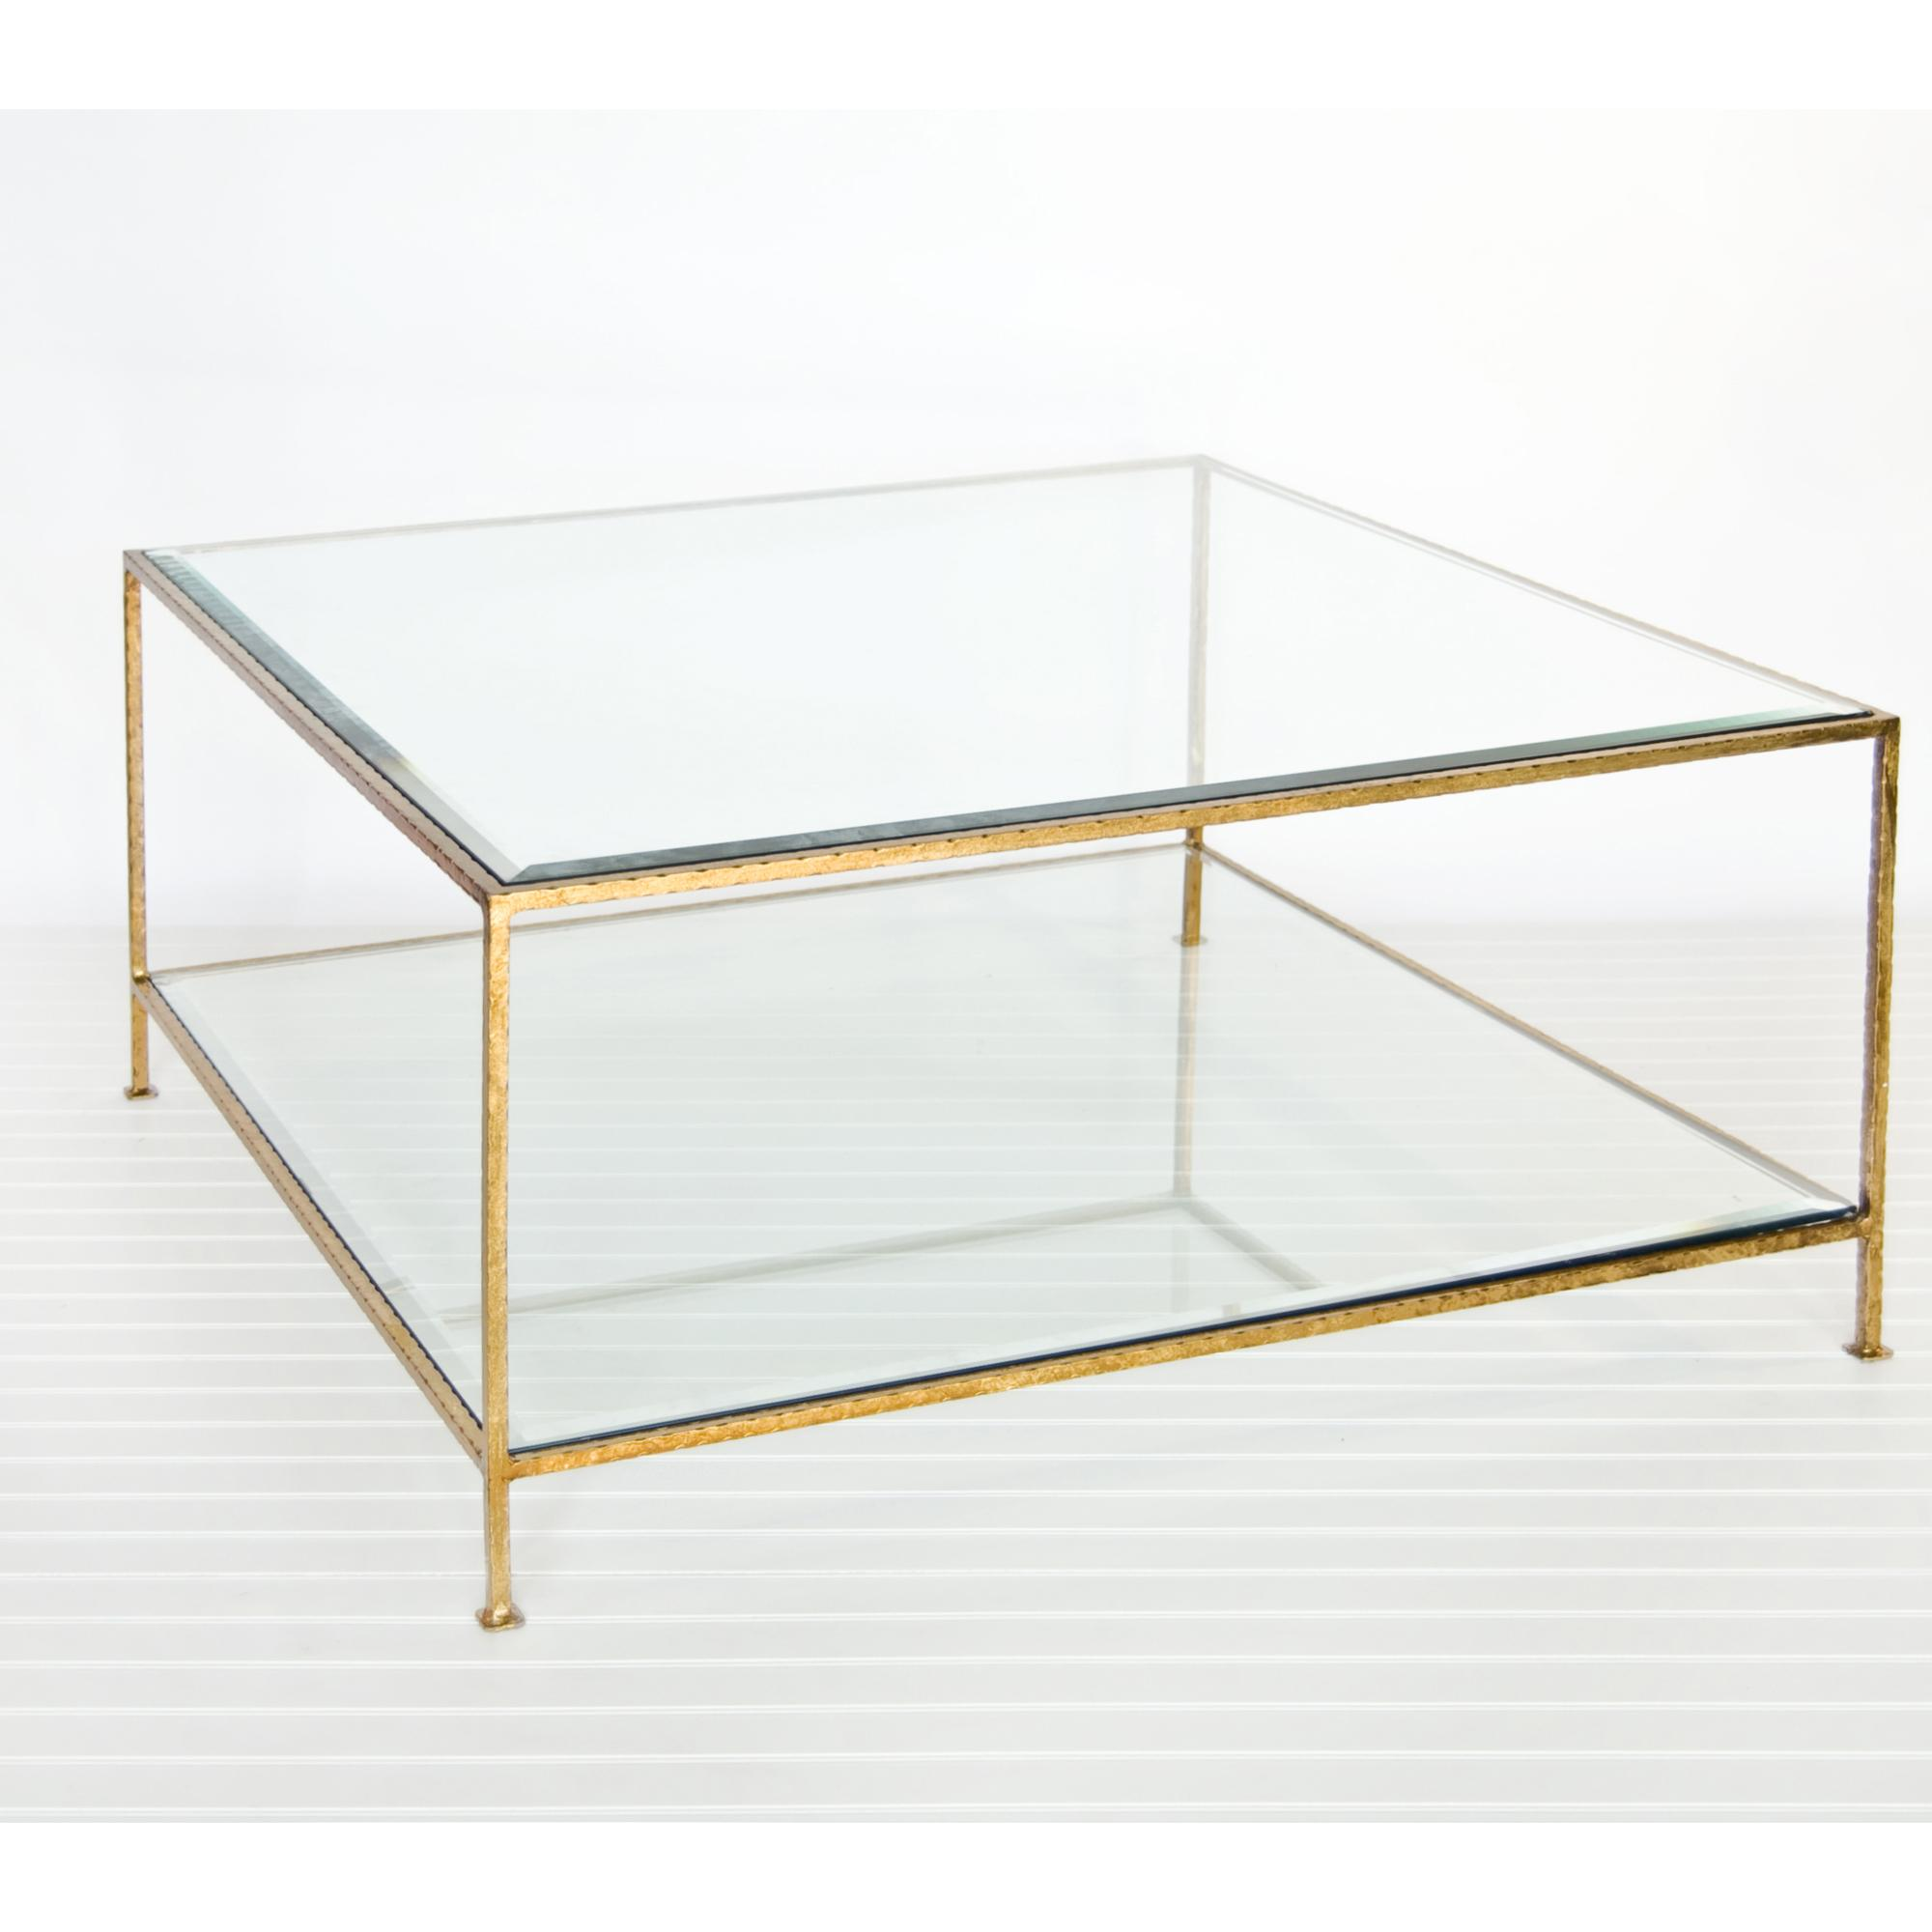 Square Modern Coffee Table Inspiration Ideas Simple And Neat Look The Shelf Underneath Is For Magazines (View 6 of 10)